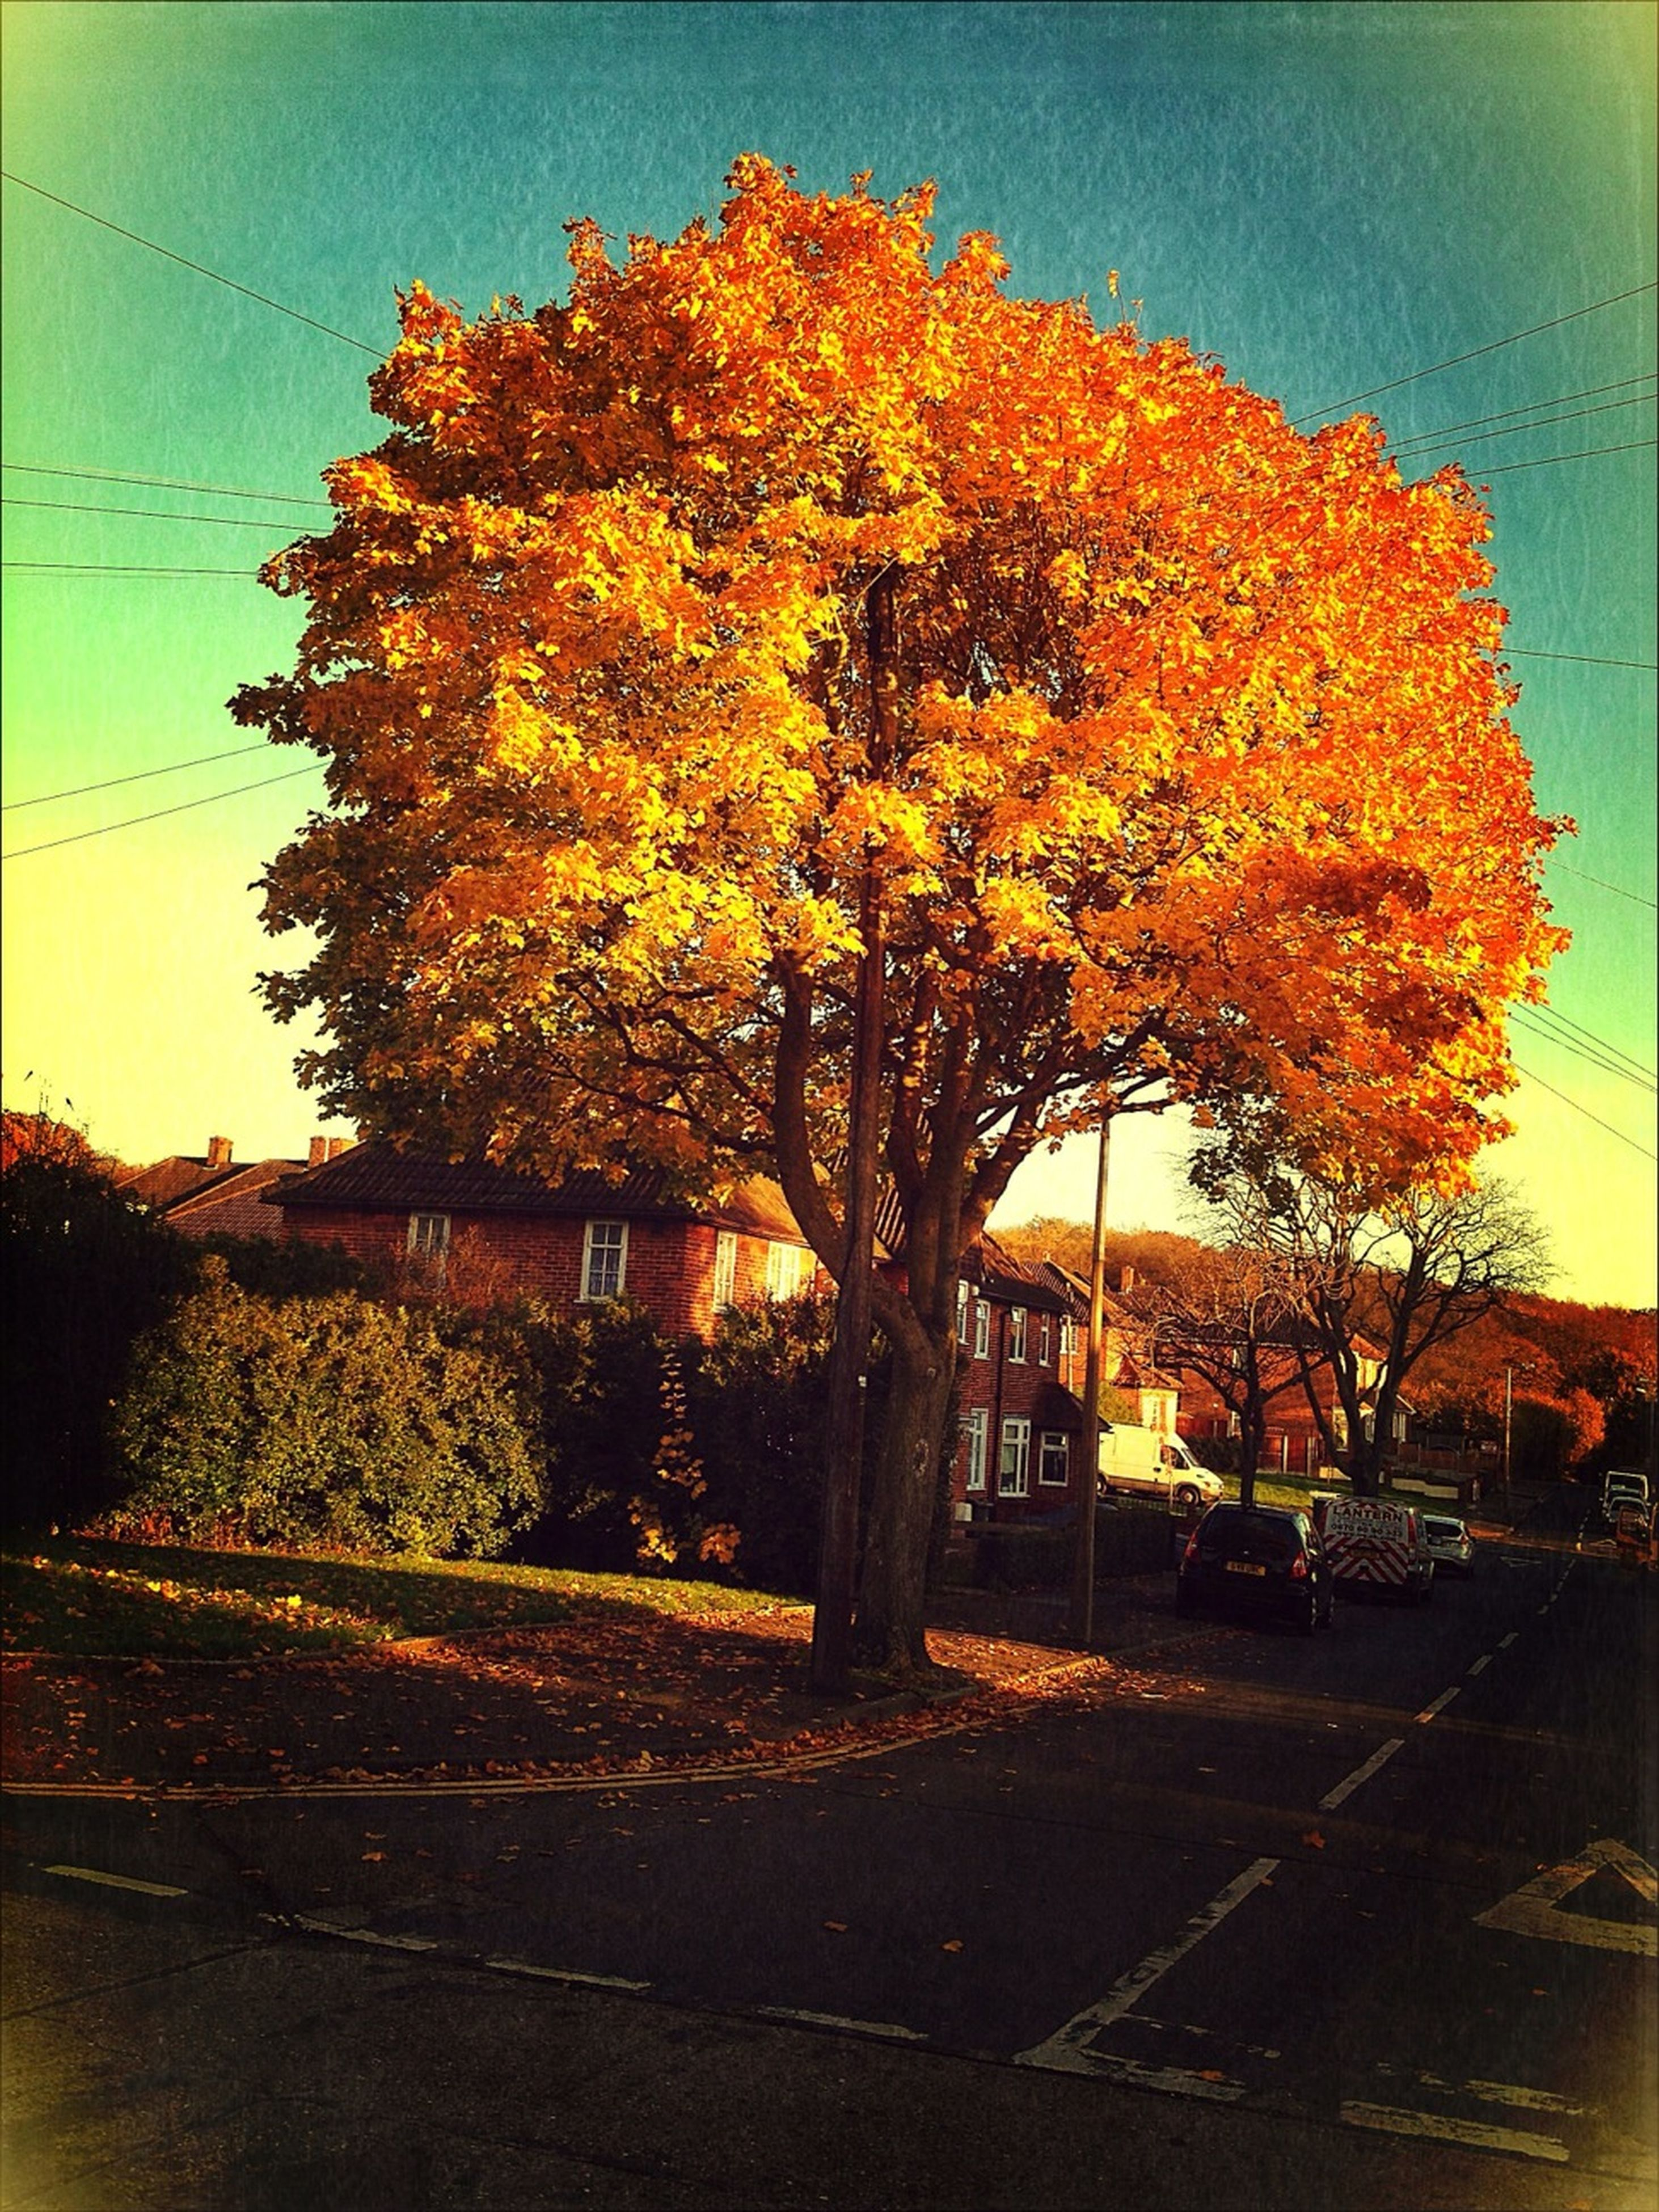 tree, autumn, change, orange color, built structure, architecture, building exterior, season, sky, sunset, nature, bare tree, branch, growth, yellow, house, outdoors, beauty in nature, tranquility, road